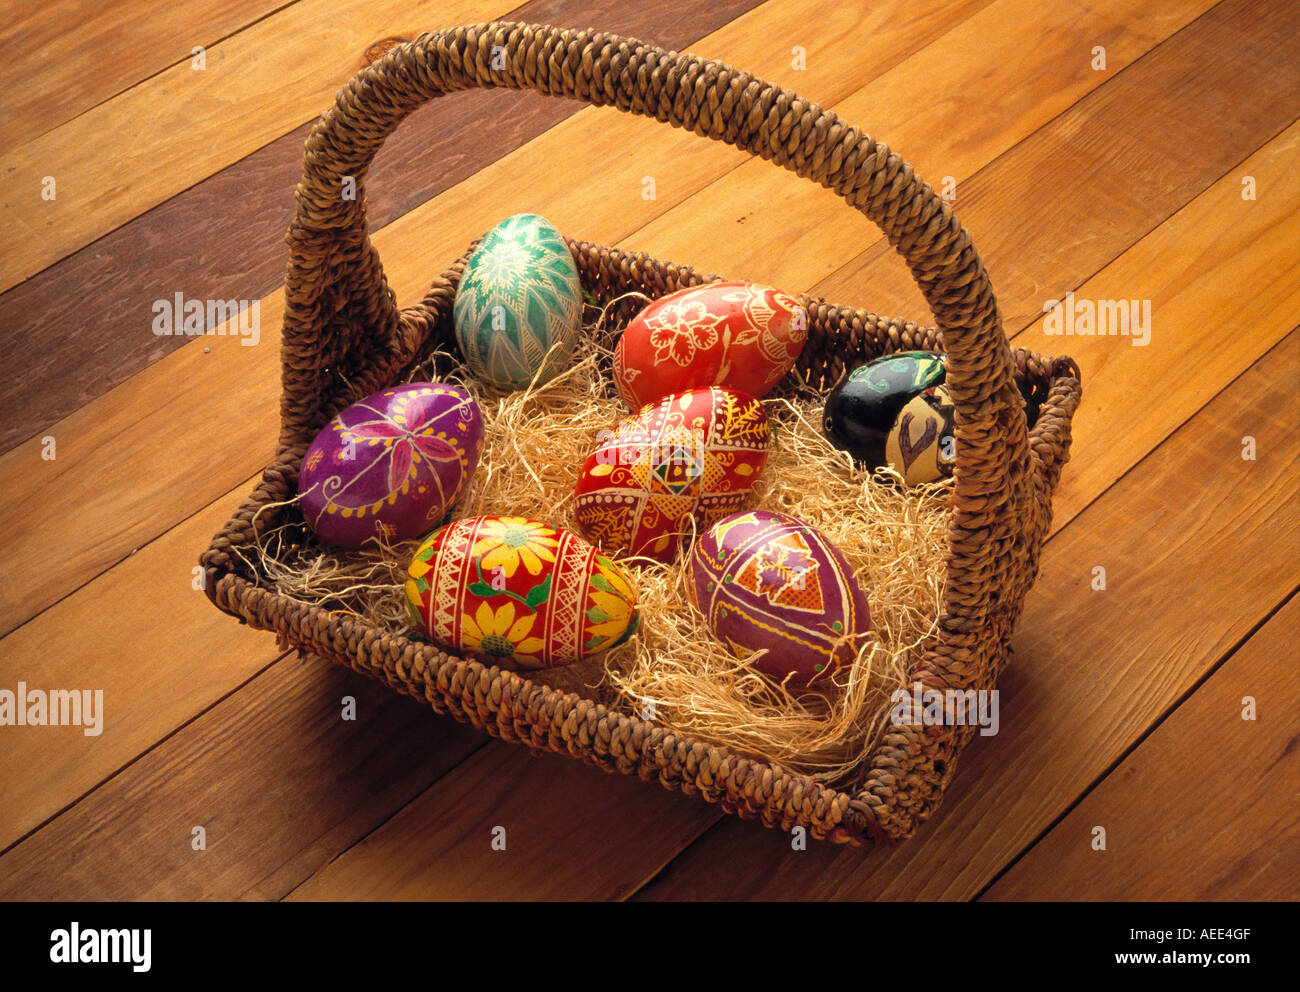 Ukrainian Easter eggs in a rustic straw filled Easter